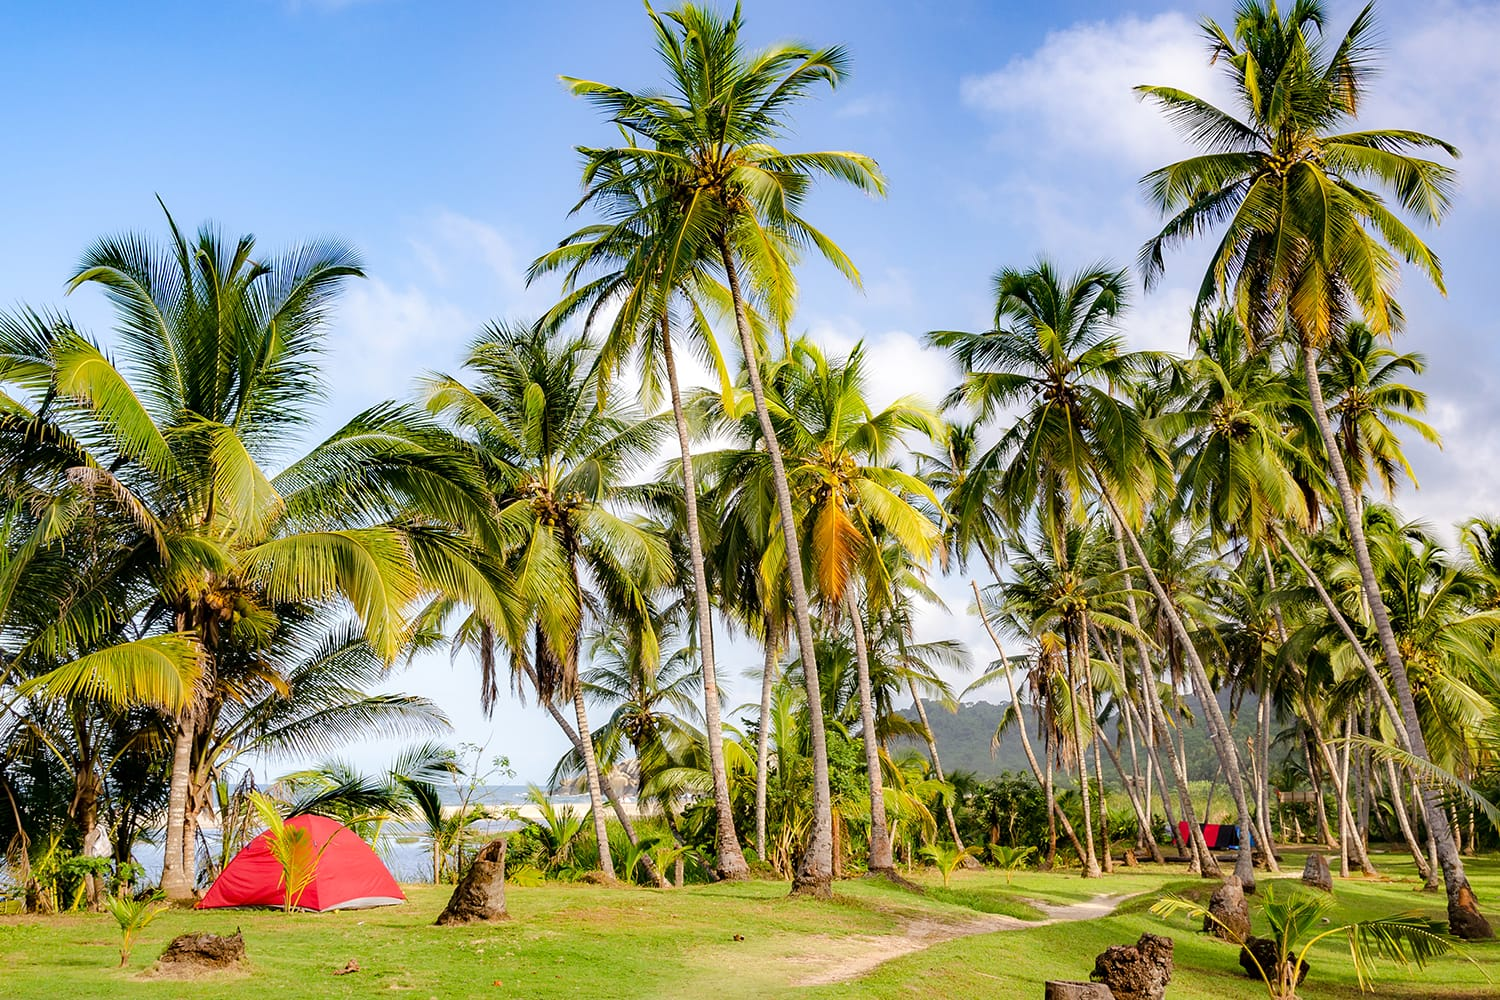 Campground at Tayrona National Park in Colombia